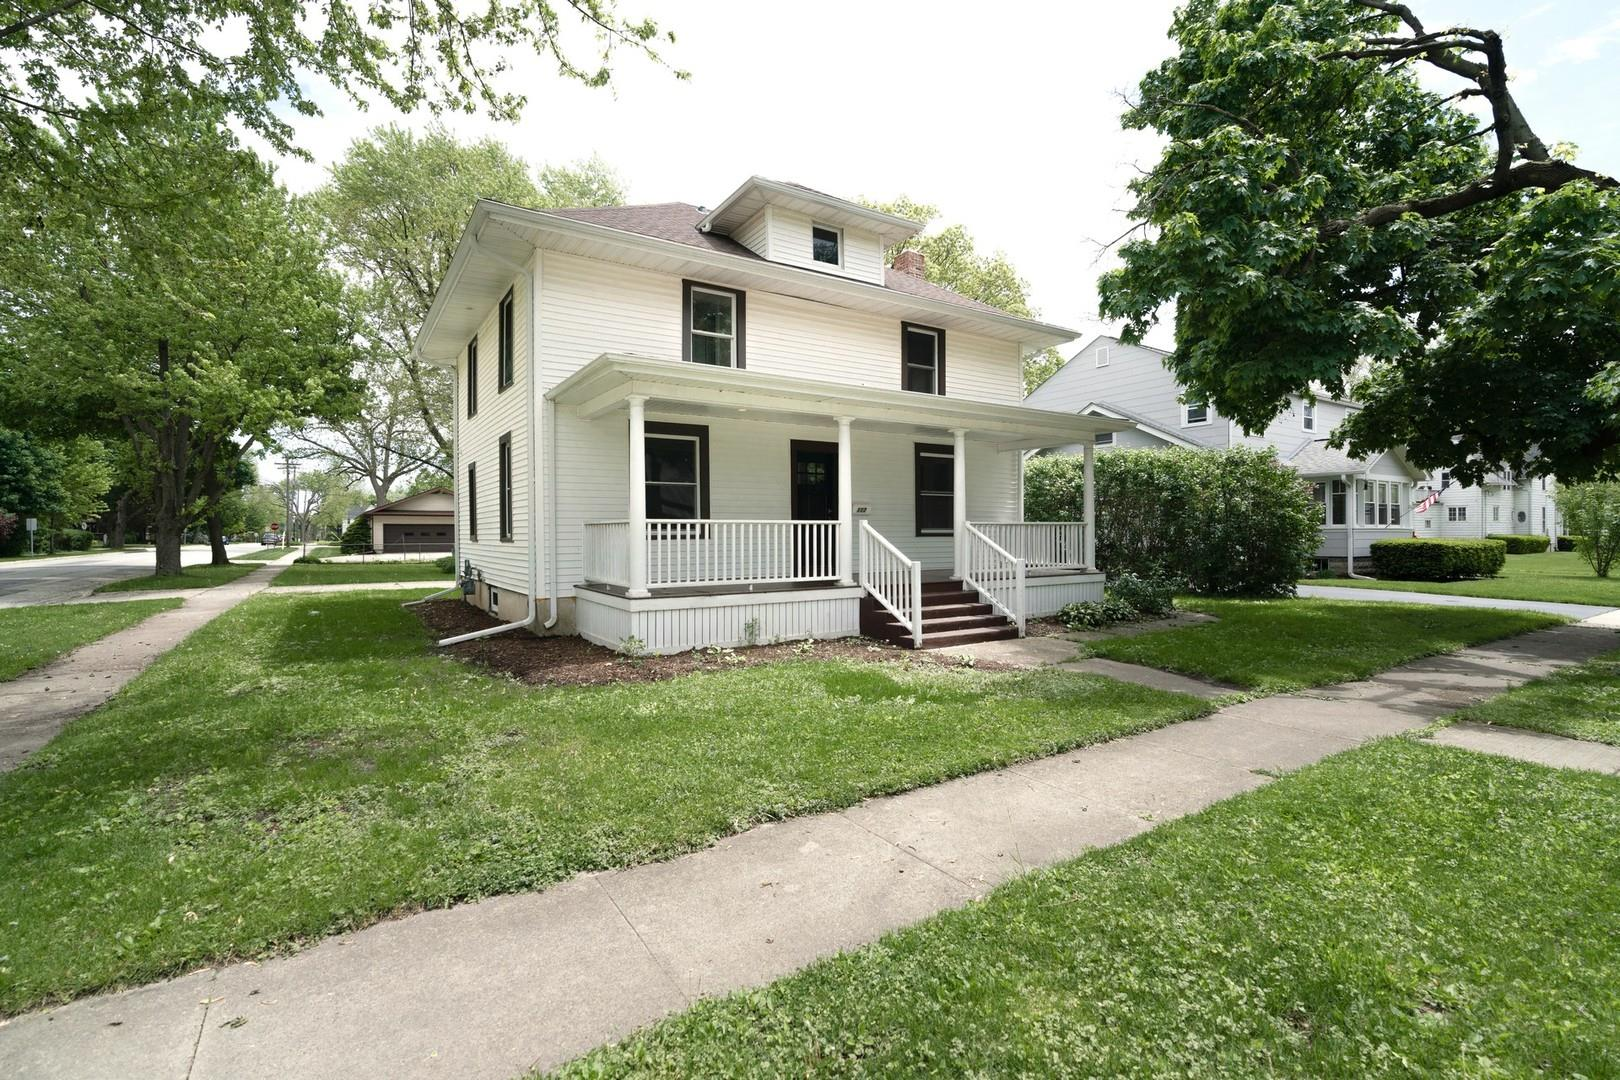 117 N 6th Street, West Dundee, IL 60118 - #: 10782575